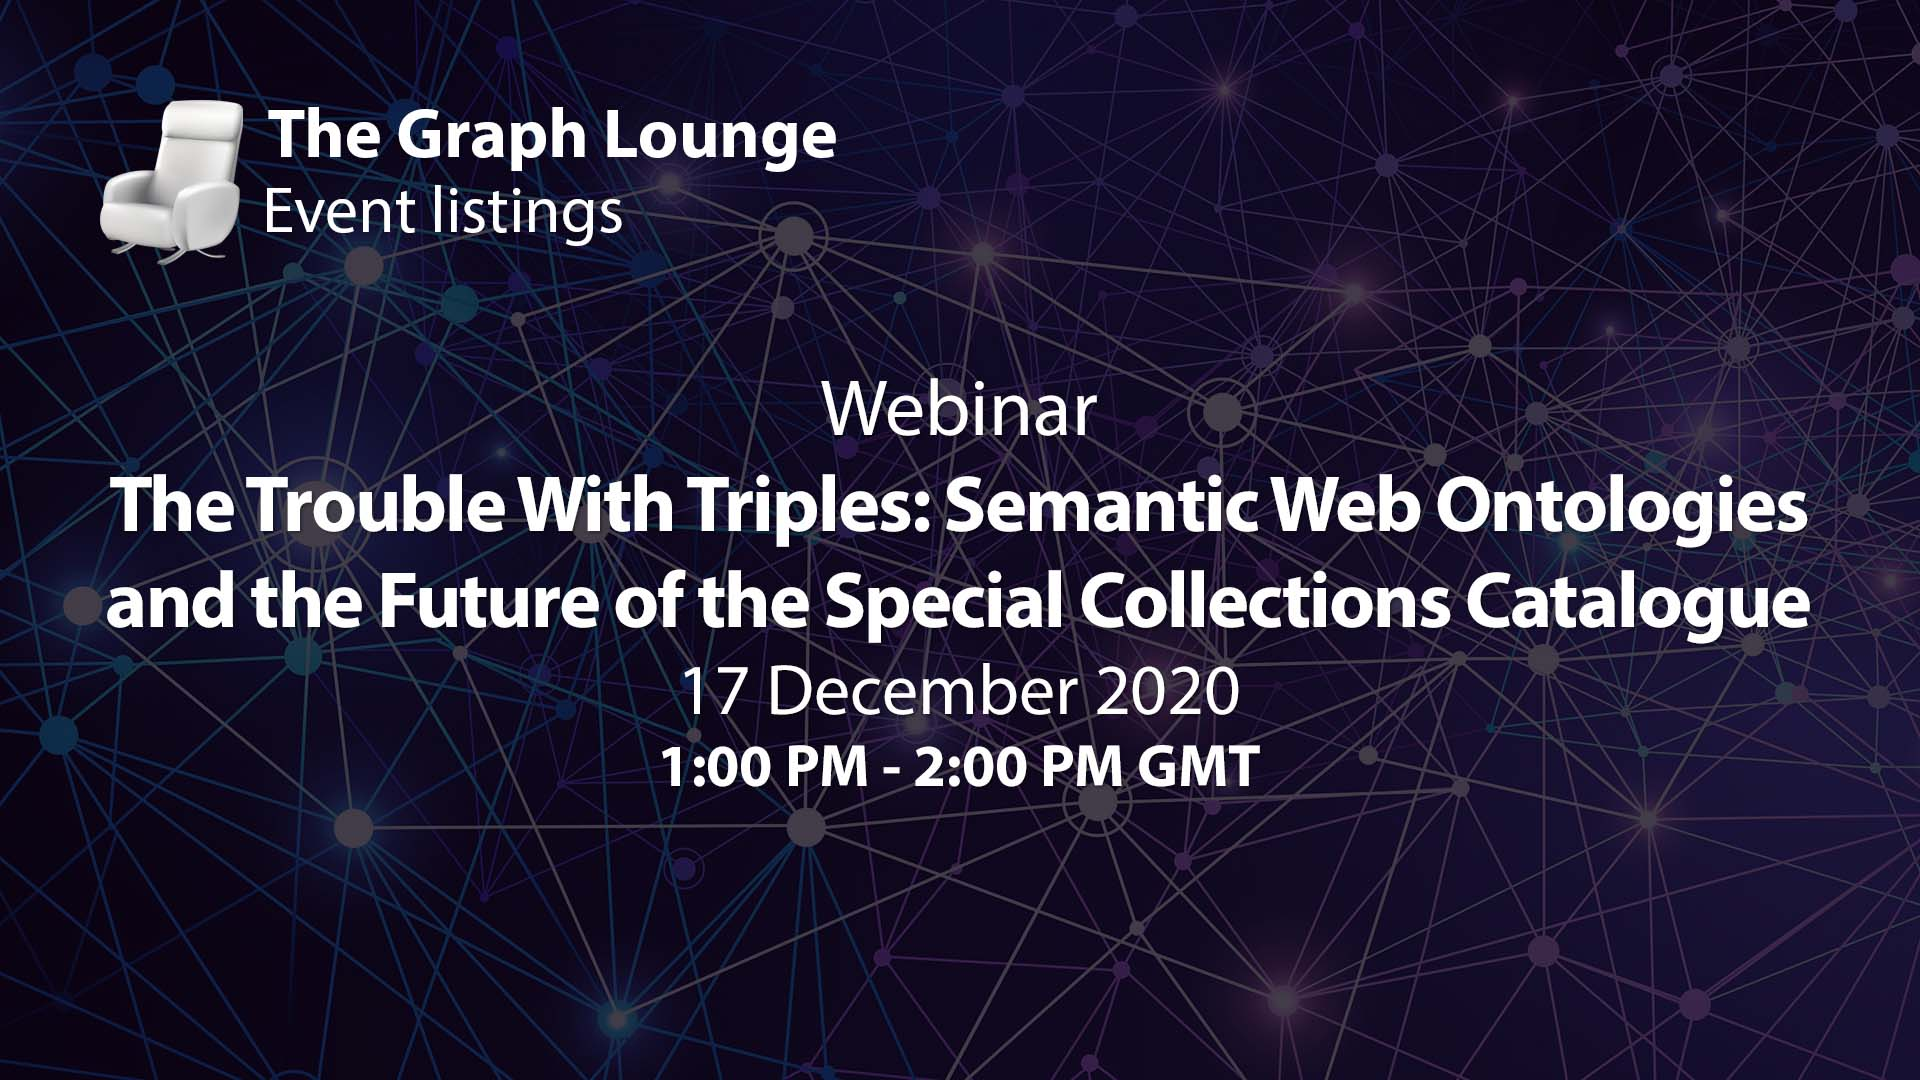 The Trouble With Triples: Semantic Web Ontologies and the Future of the Special Collections Catalogue